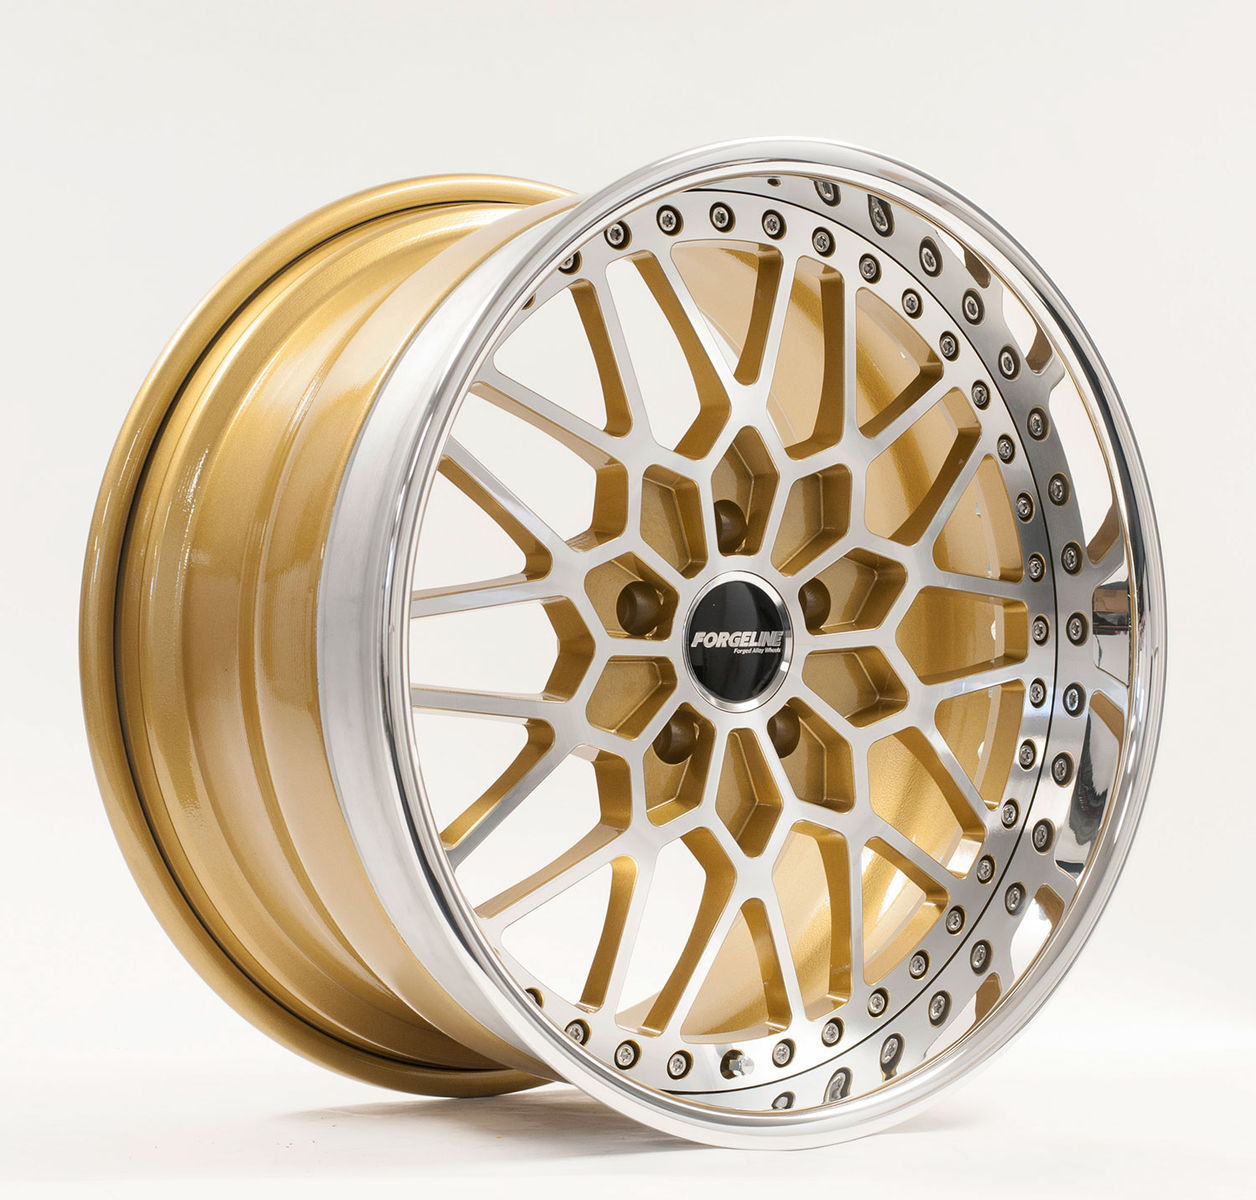 | Forgeline TA3 in Gold with HTM